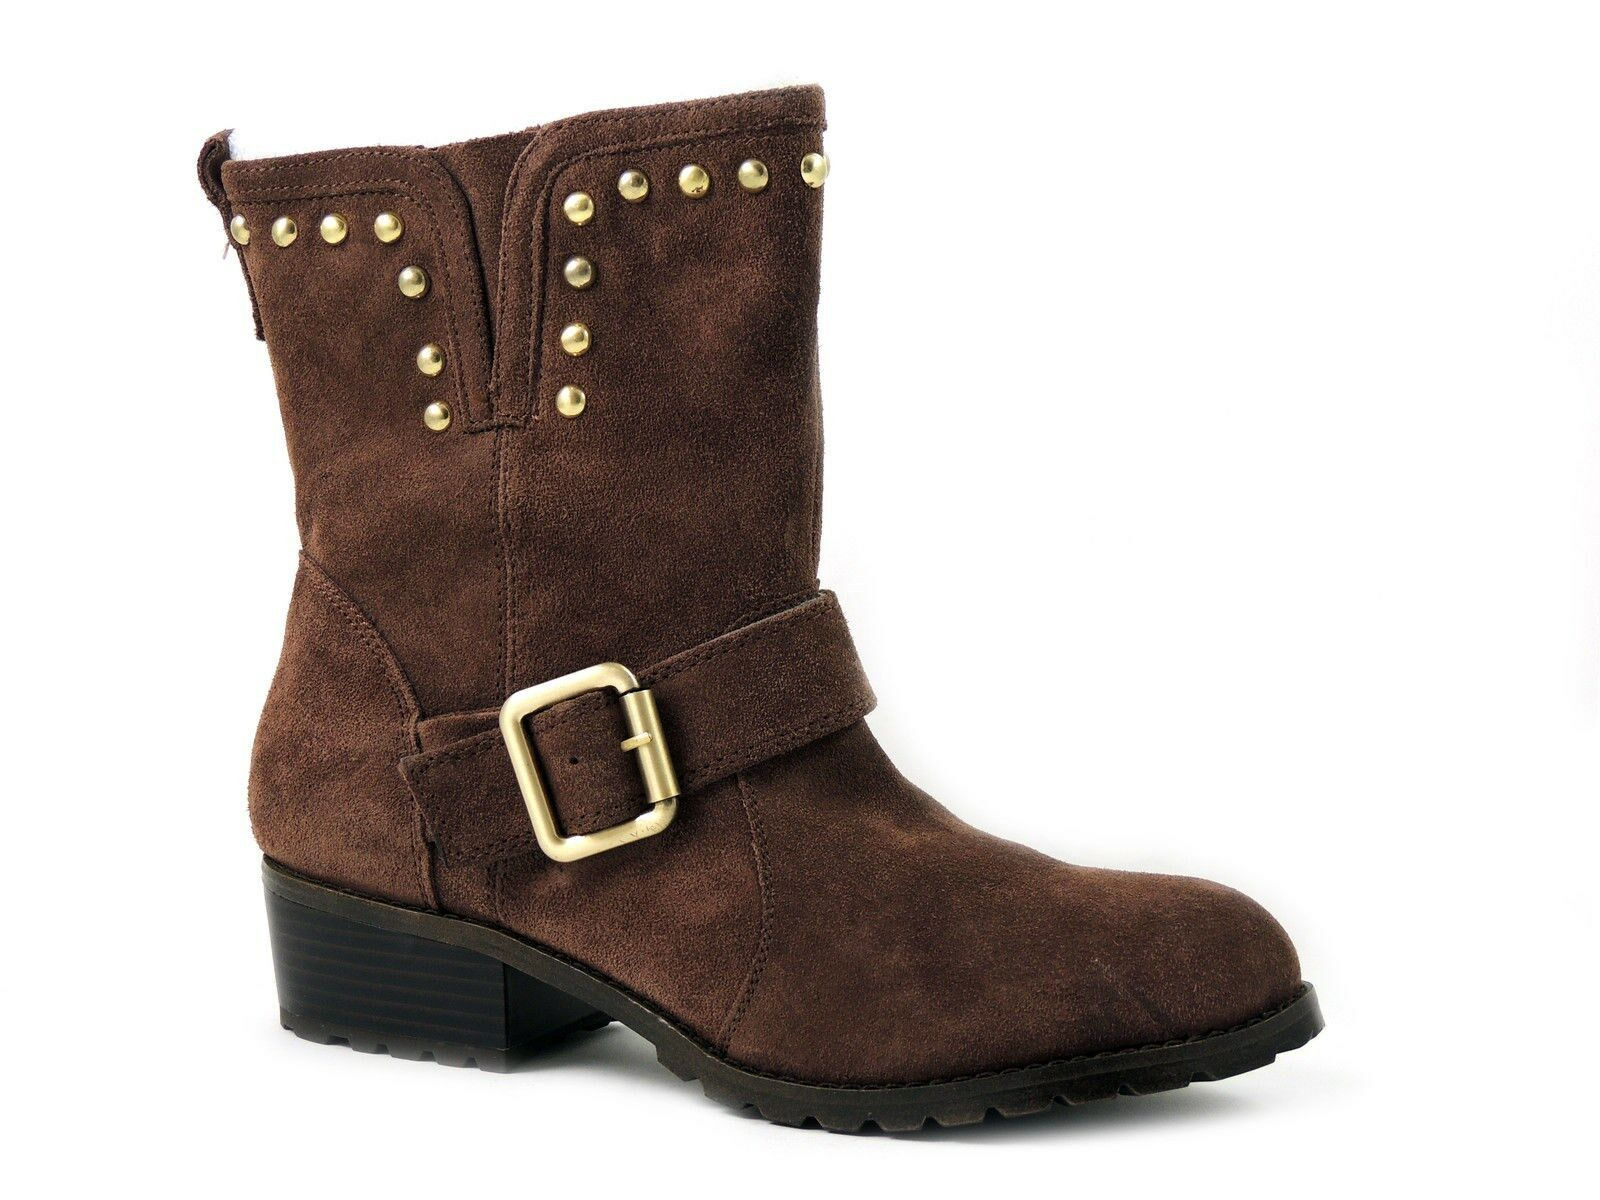 INC International Concepts Women's Henry Boots Nutmeg Suede Size 9 M